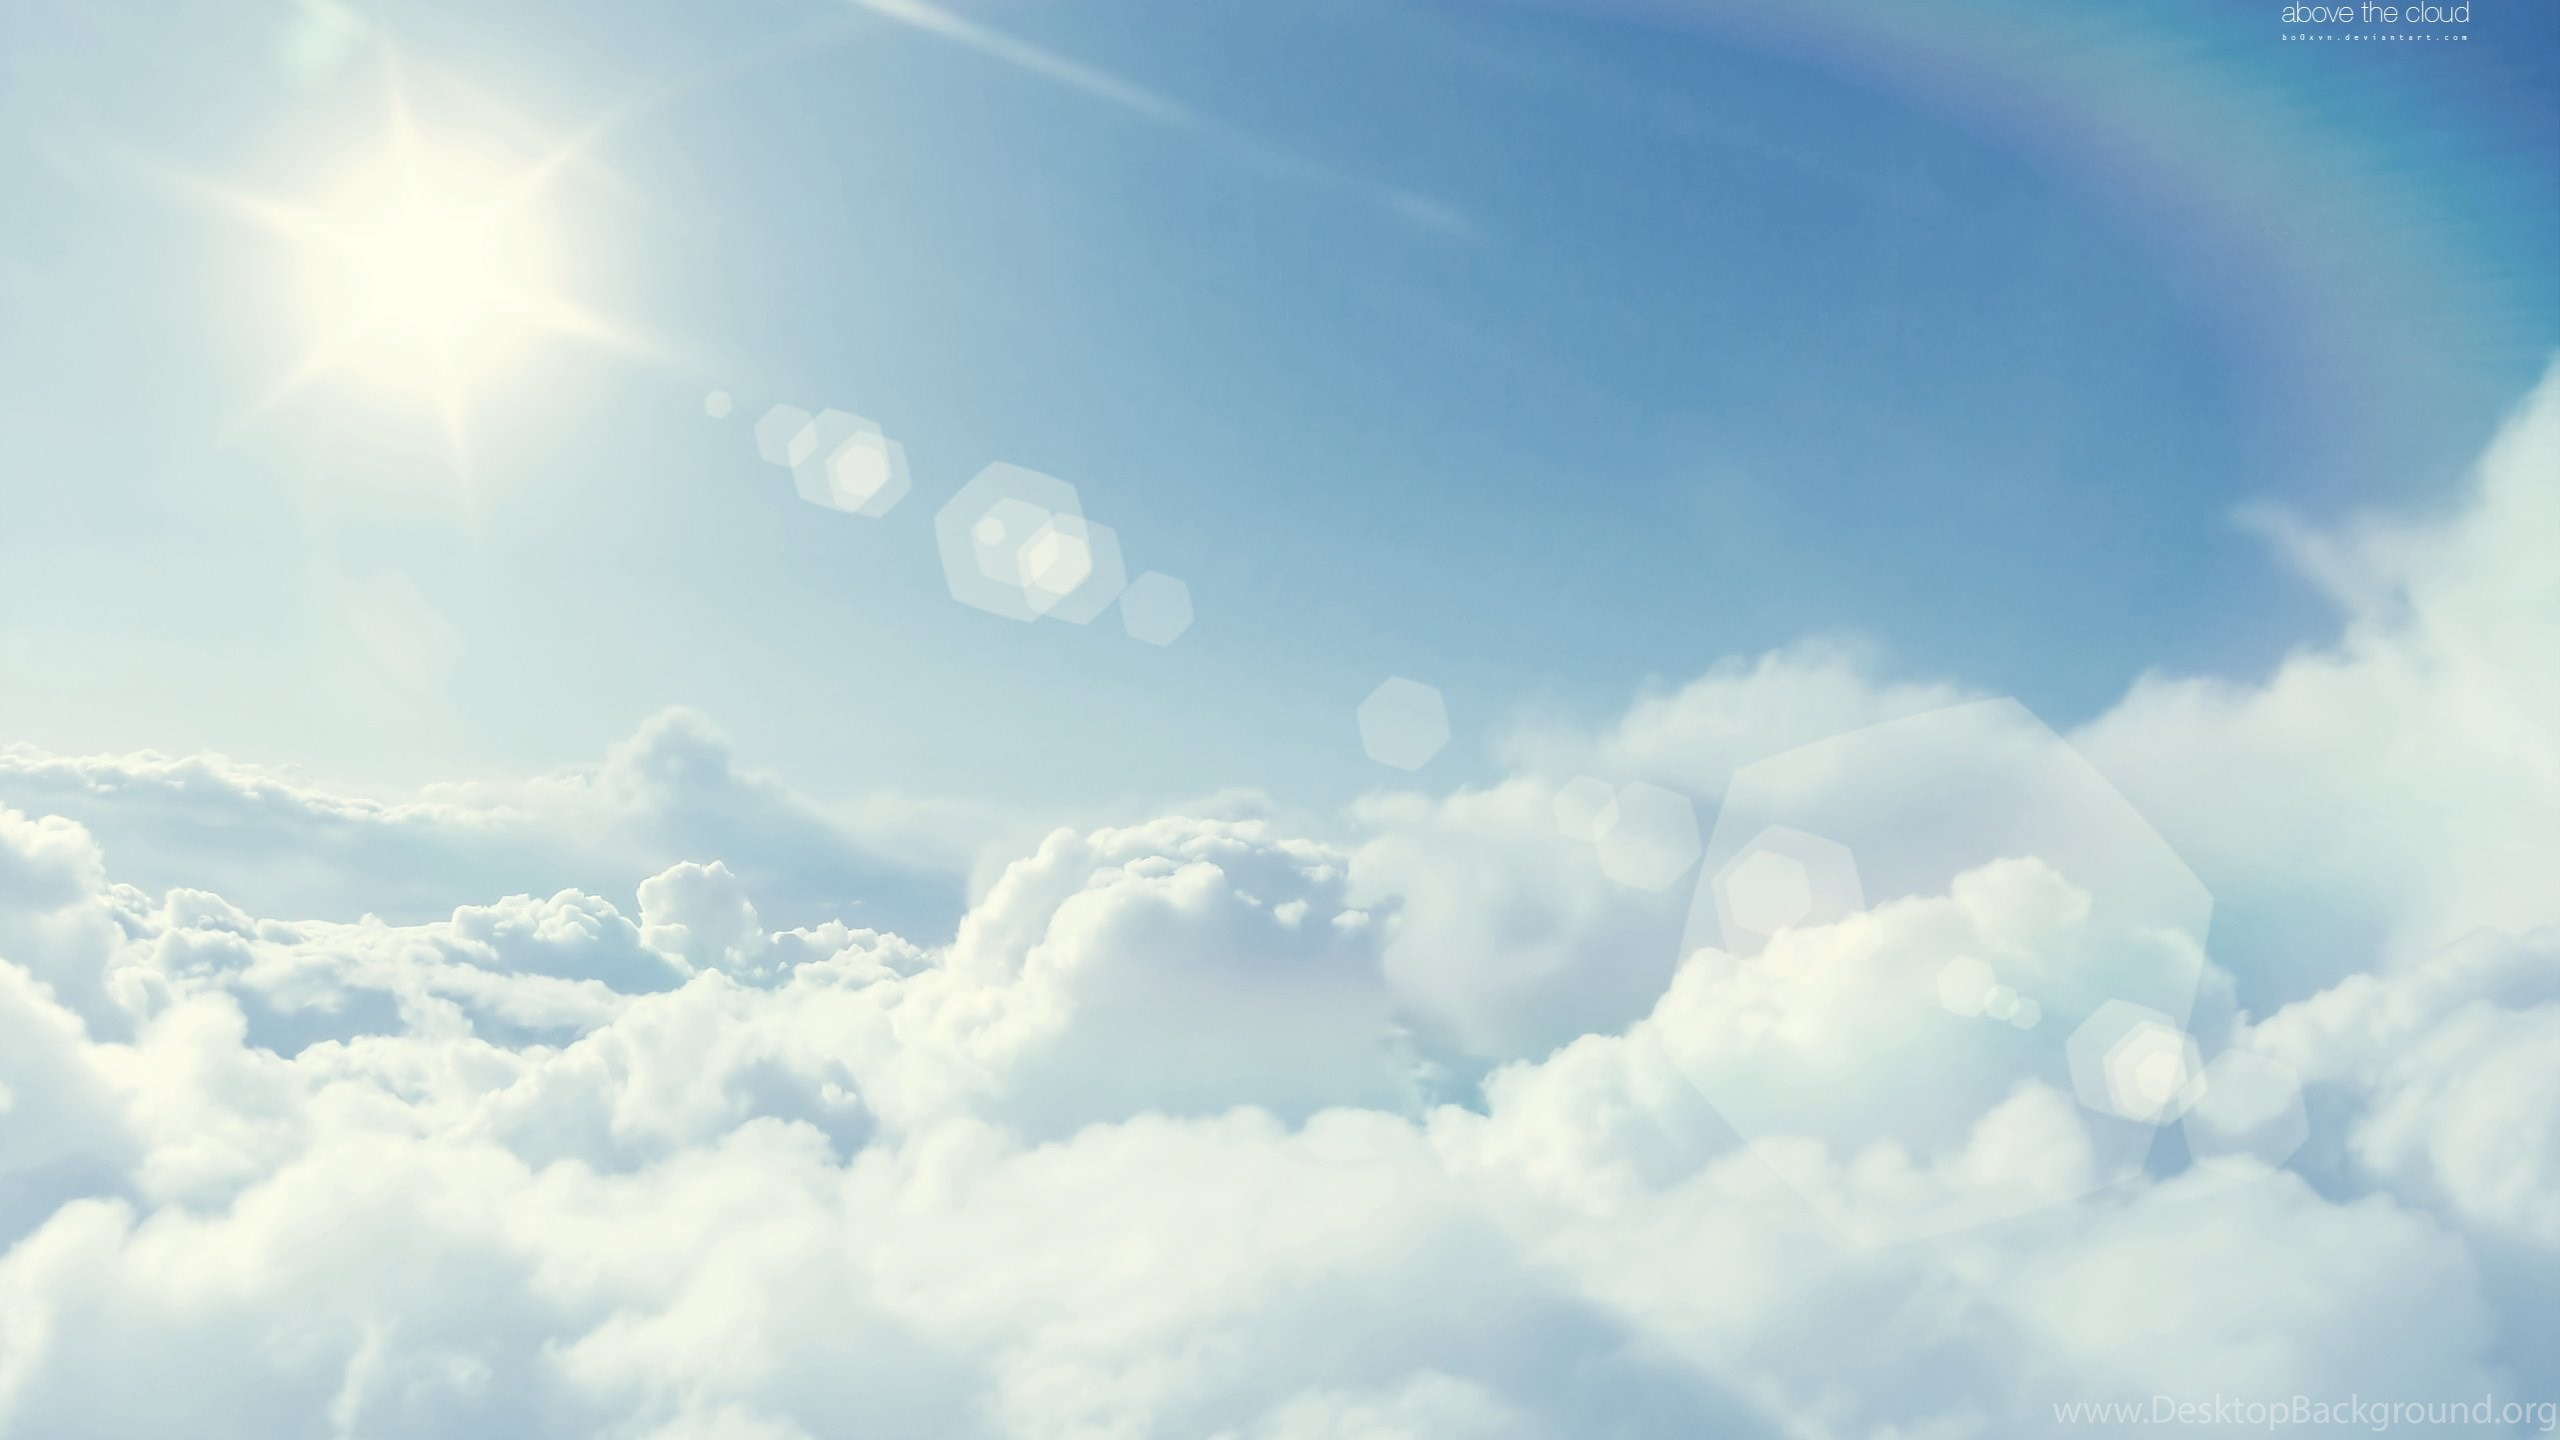 Hd Beautiful Cloud Wallpapers High Resolution Full Size